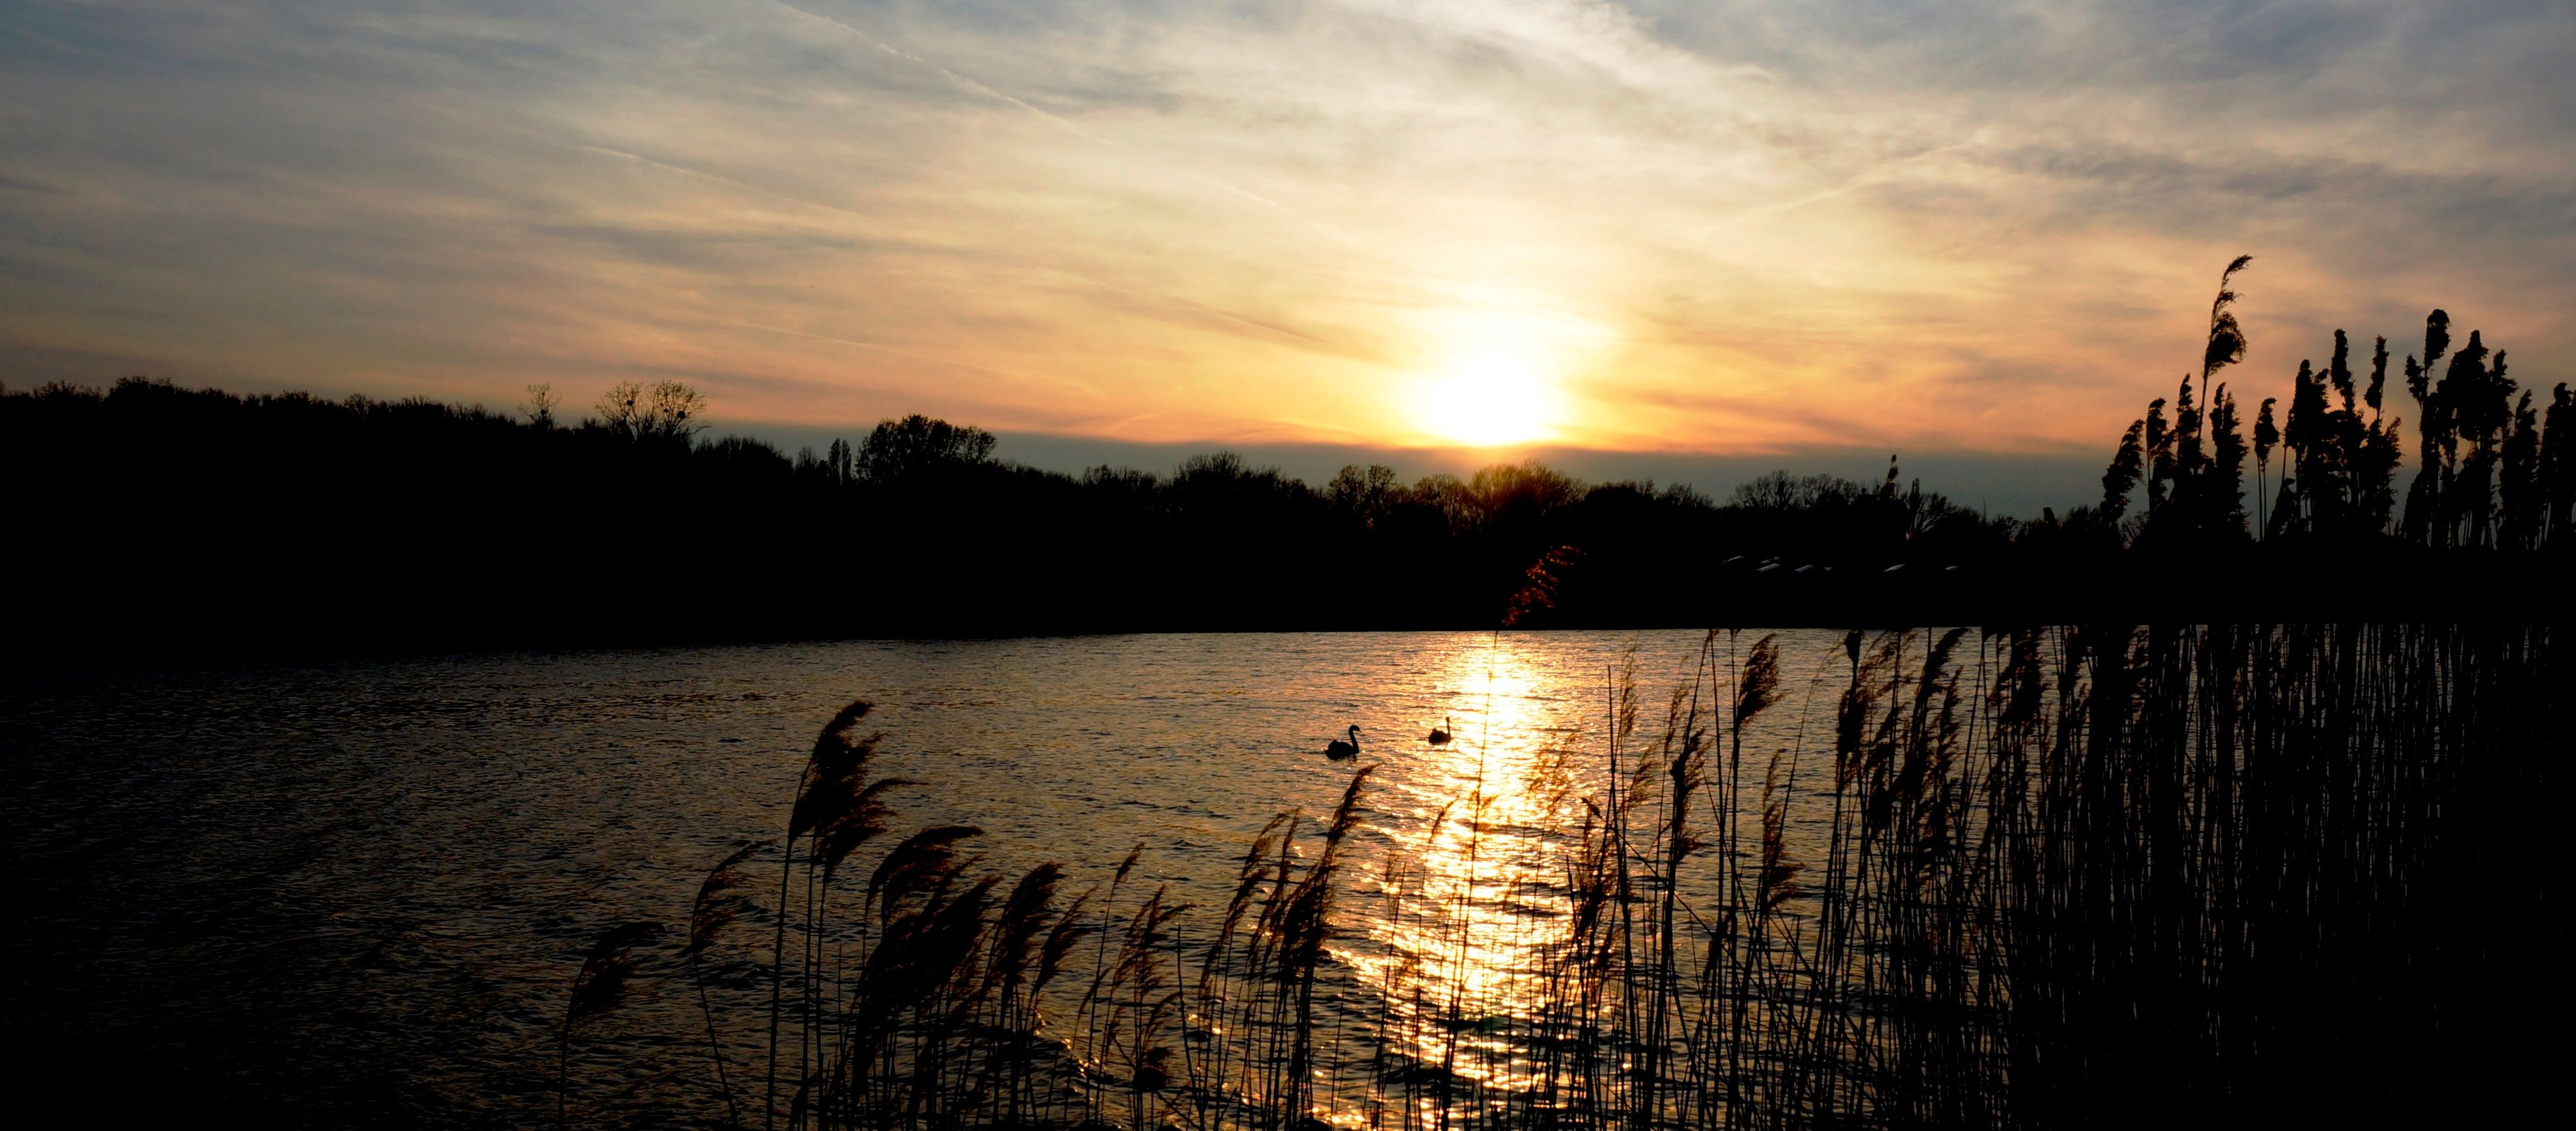 sunset, sun, silhouette, tranquil scene, tranquility, water, scenics, sky, beauty in nature, reflection, lake, nature, idyllic, orange color, plant, sunlight, tree, cloud - sky, outdoors, growth